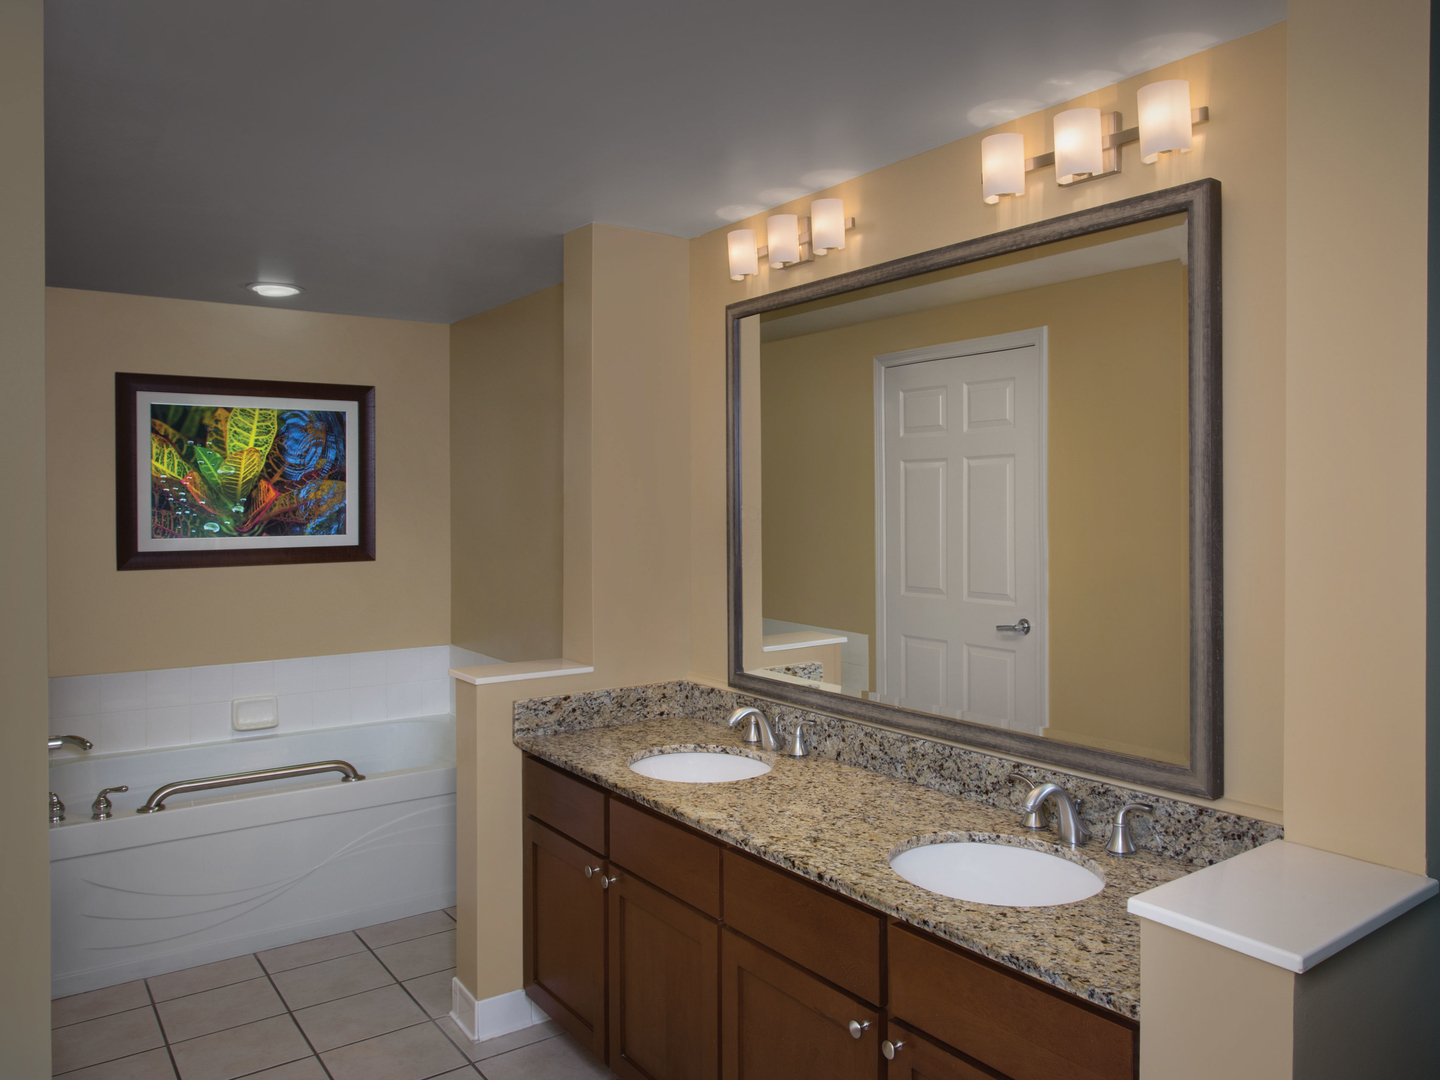 Marriott's Legends Edge at Bay Point Villa Master Bathroom. Marriott's Legends Edge at Bay Point is located in Panama City, Florida United States.